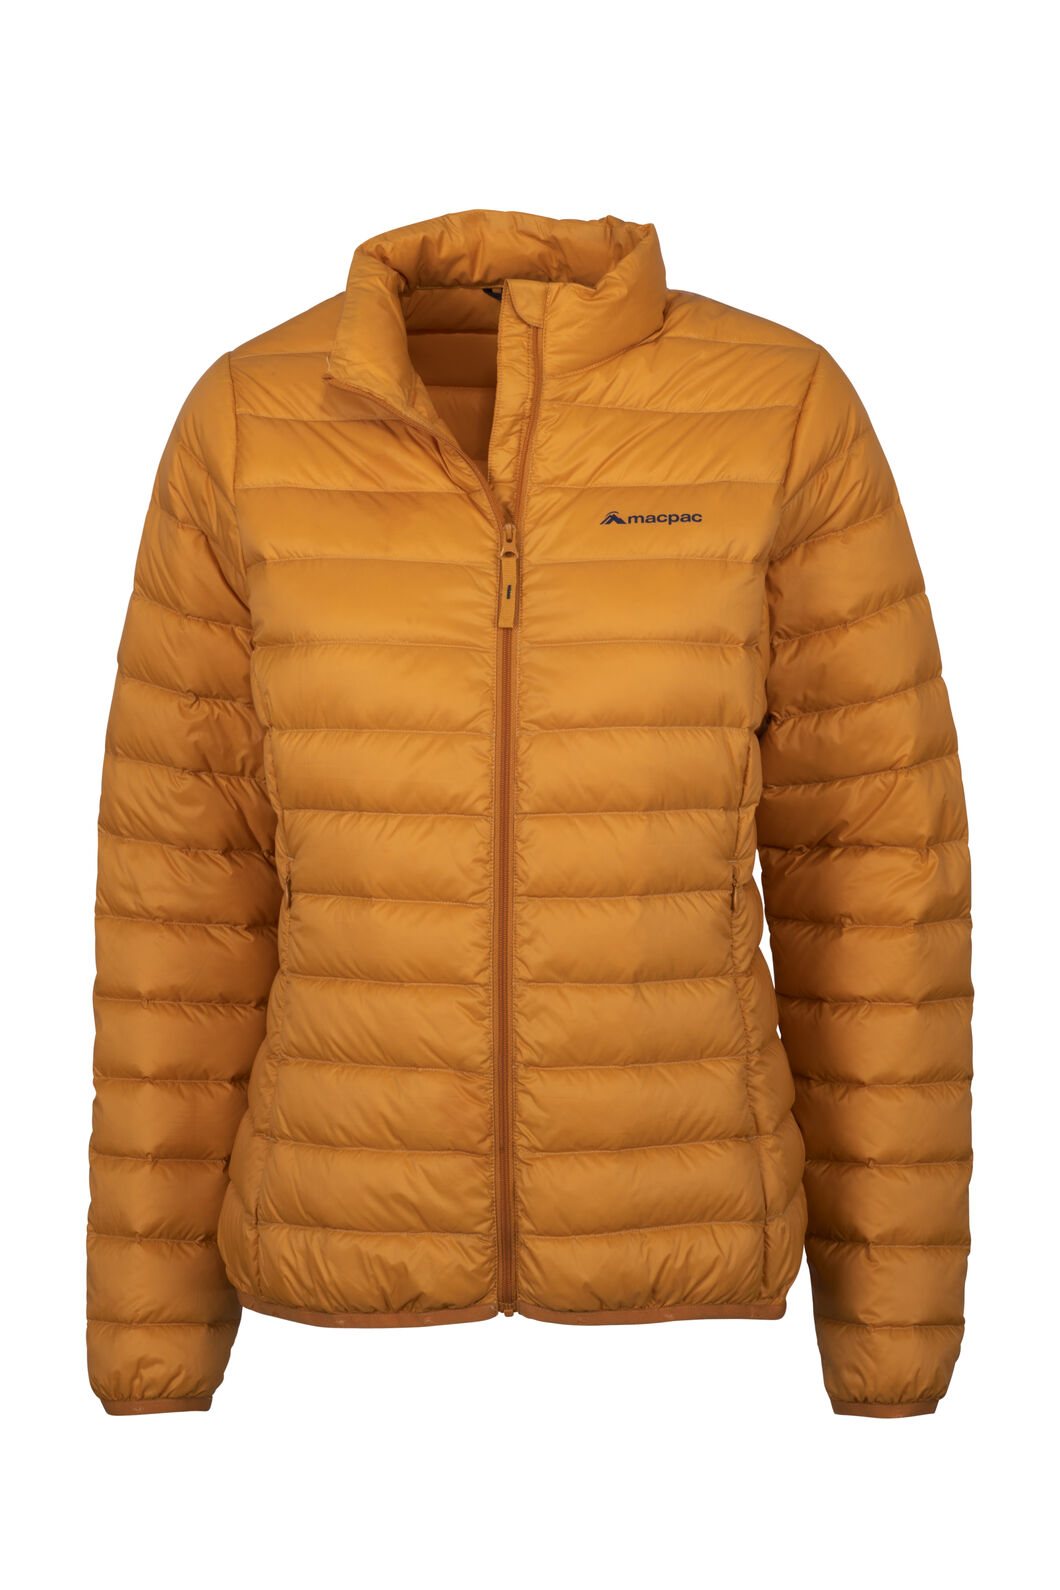 Macpac Uber Light Down Jacket — Women's, Inca Gold, hi-res